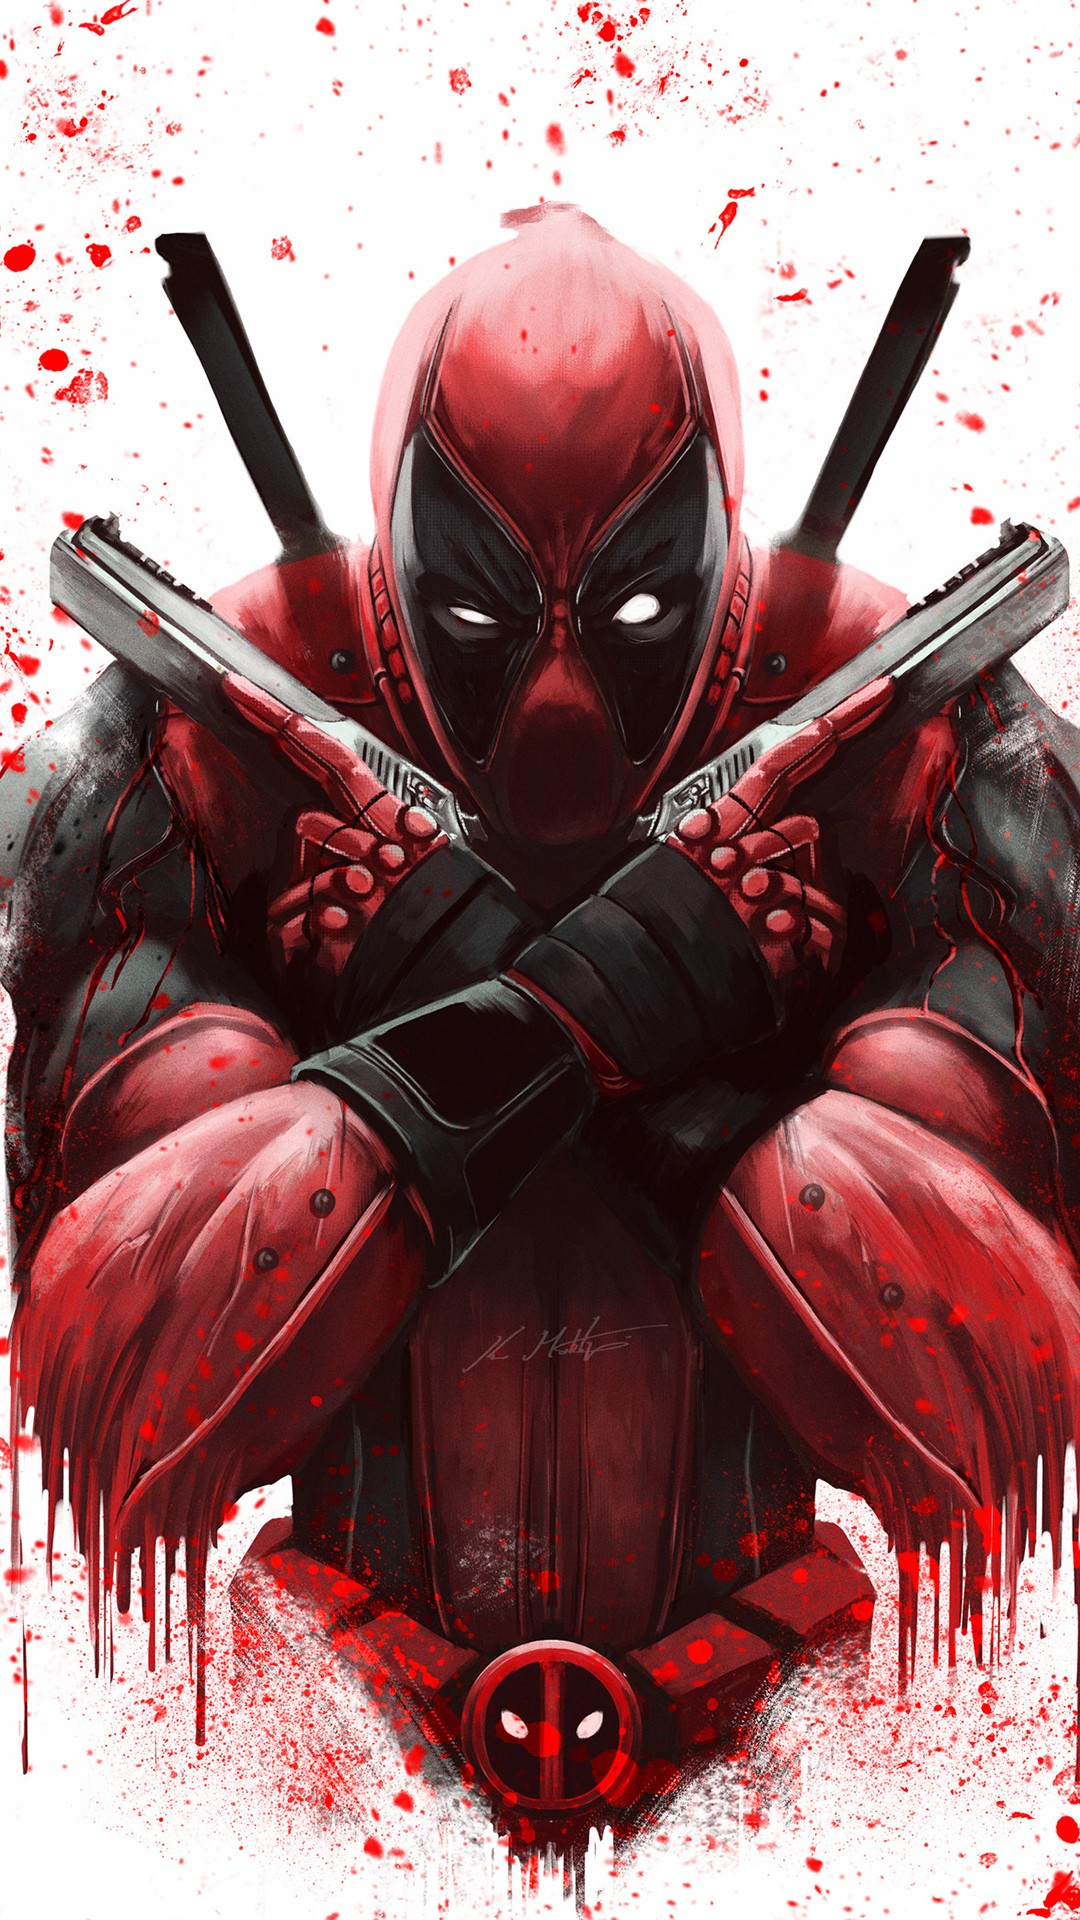 Deadpool Hd Wallpaper Iphone 6 Deadpool Artwork 4k Wallpapers Hd Wallpapers Id 24096